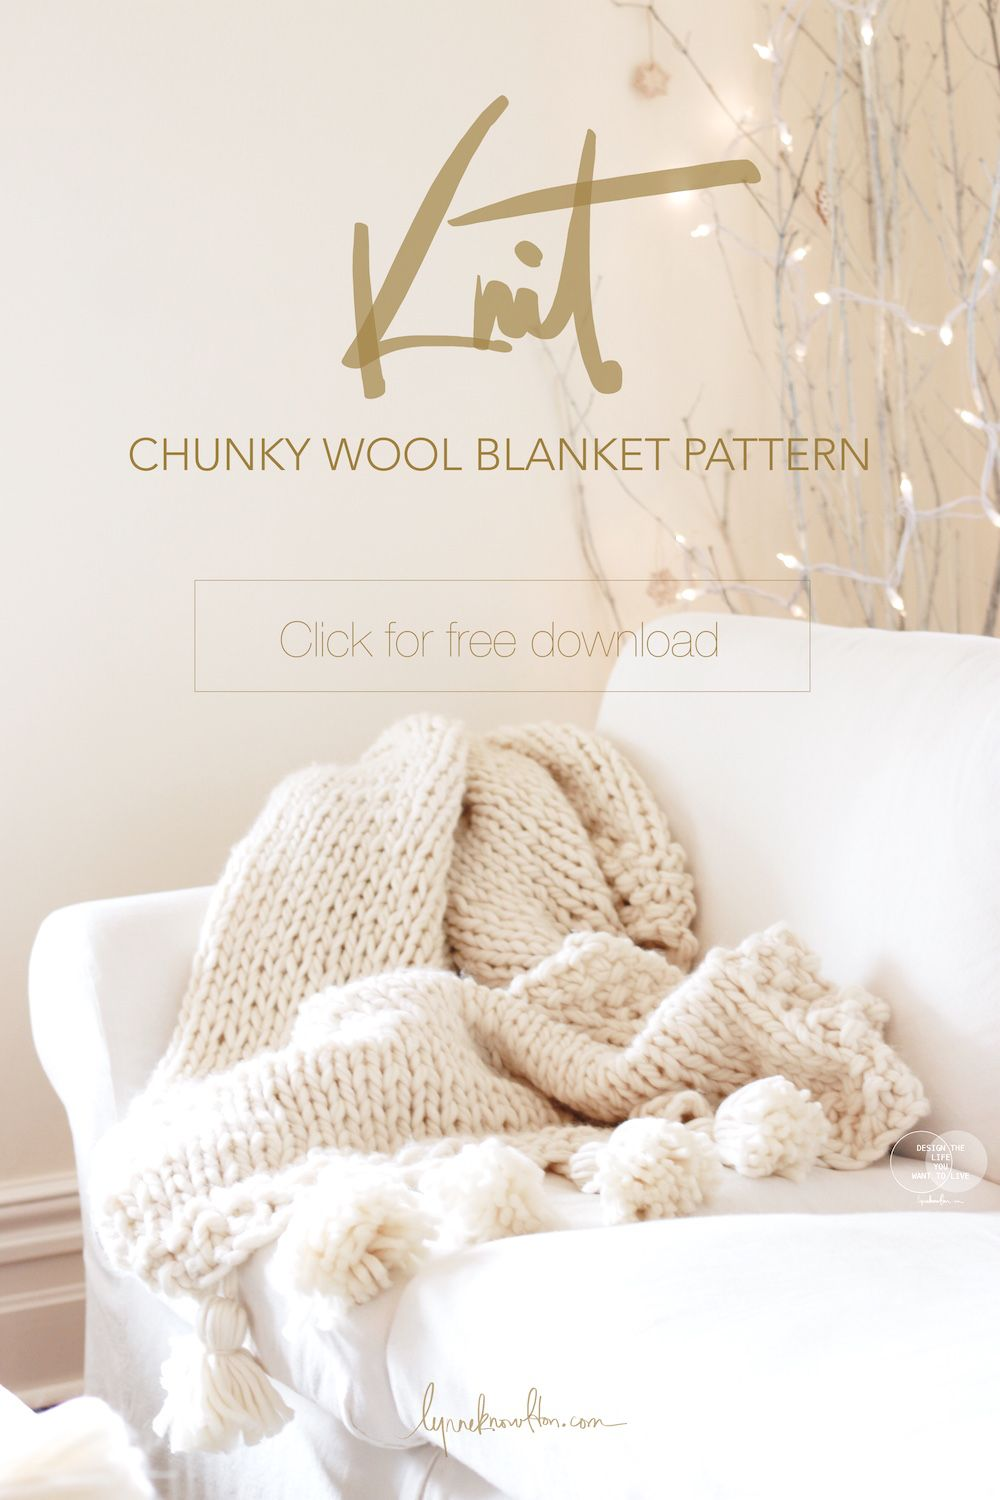 Intermediate level knitting : Chunky Wool Blanket { Free ...